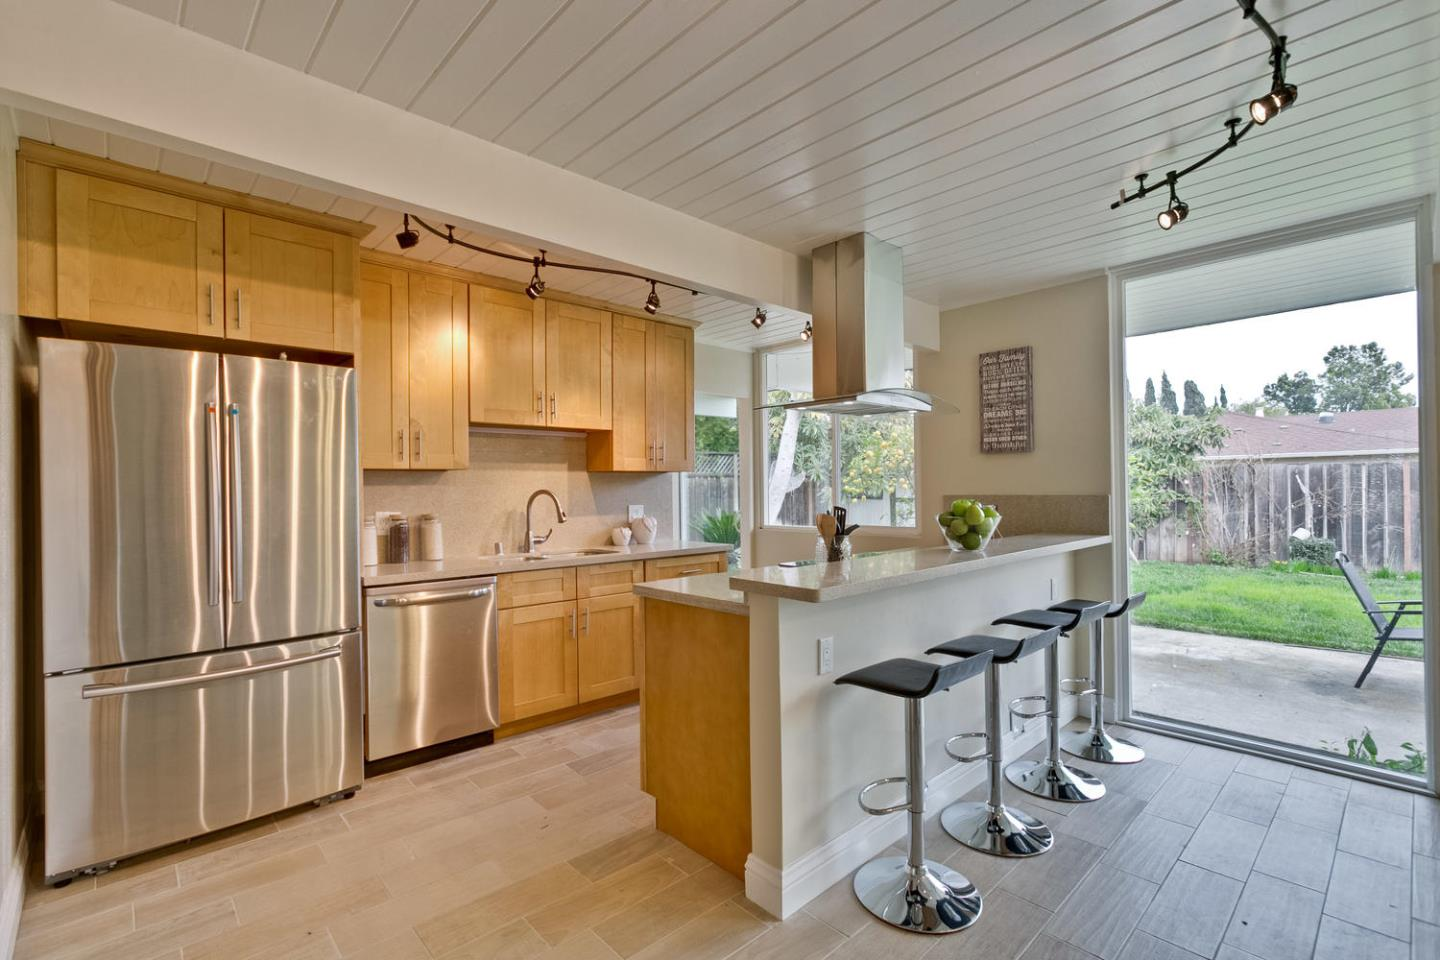 Other for Sale at 1468 Kingfisher Way SUNNYVALE, CALIFORNIA 94087